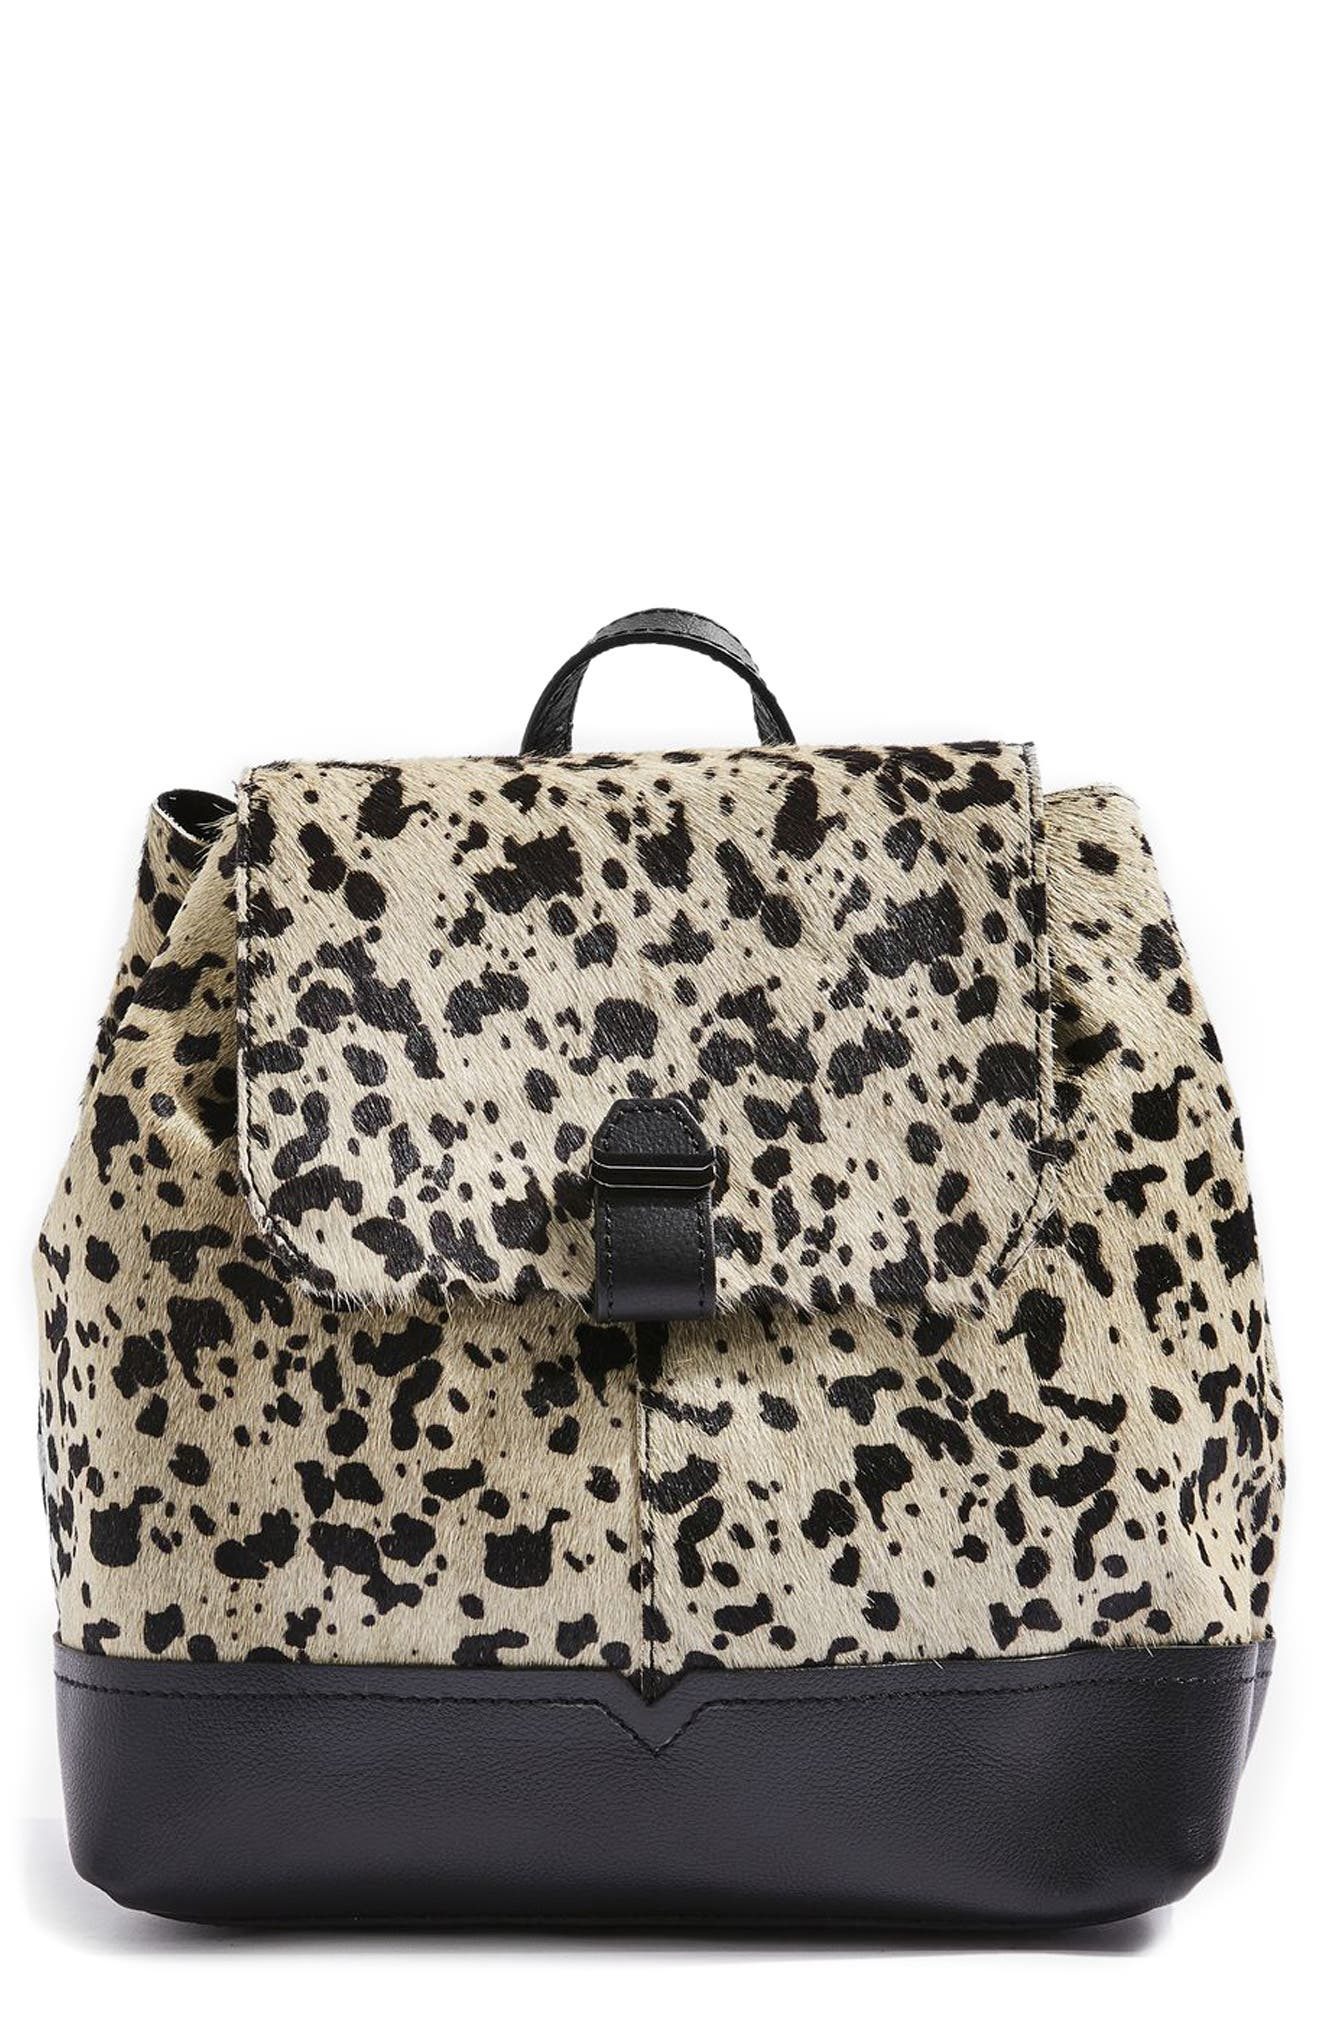 Topshop Genuine Calf Hair & Calfskin Leather Backpack